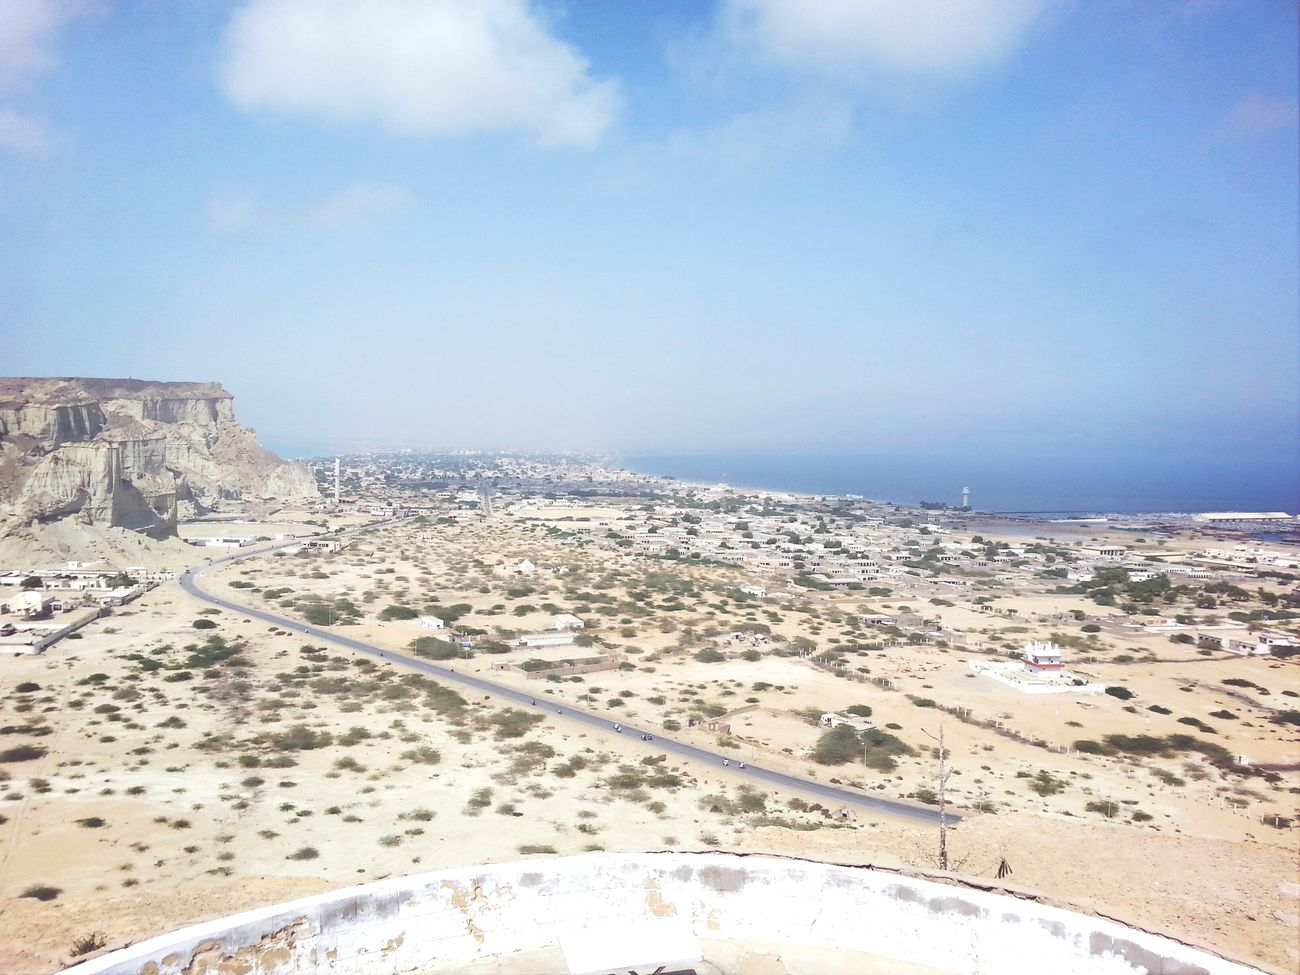 Koh e batil view of Gwadar